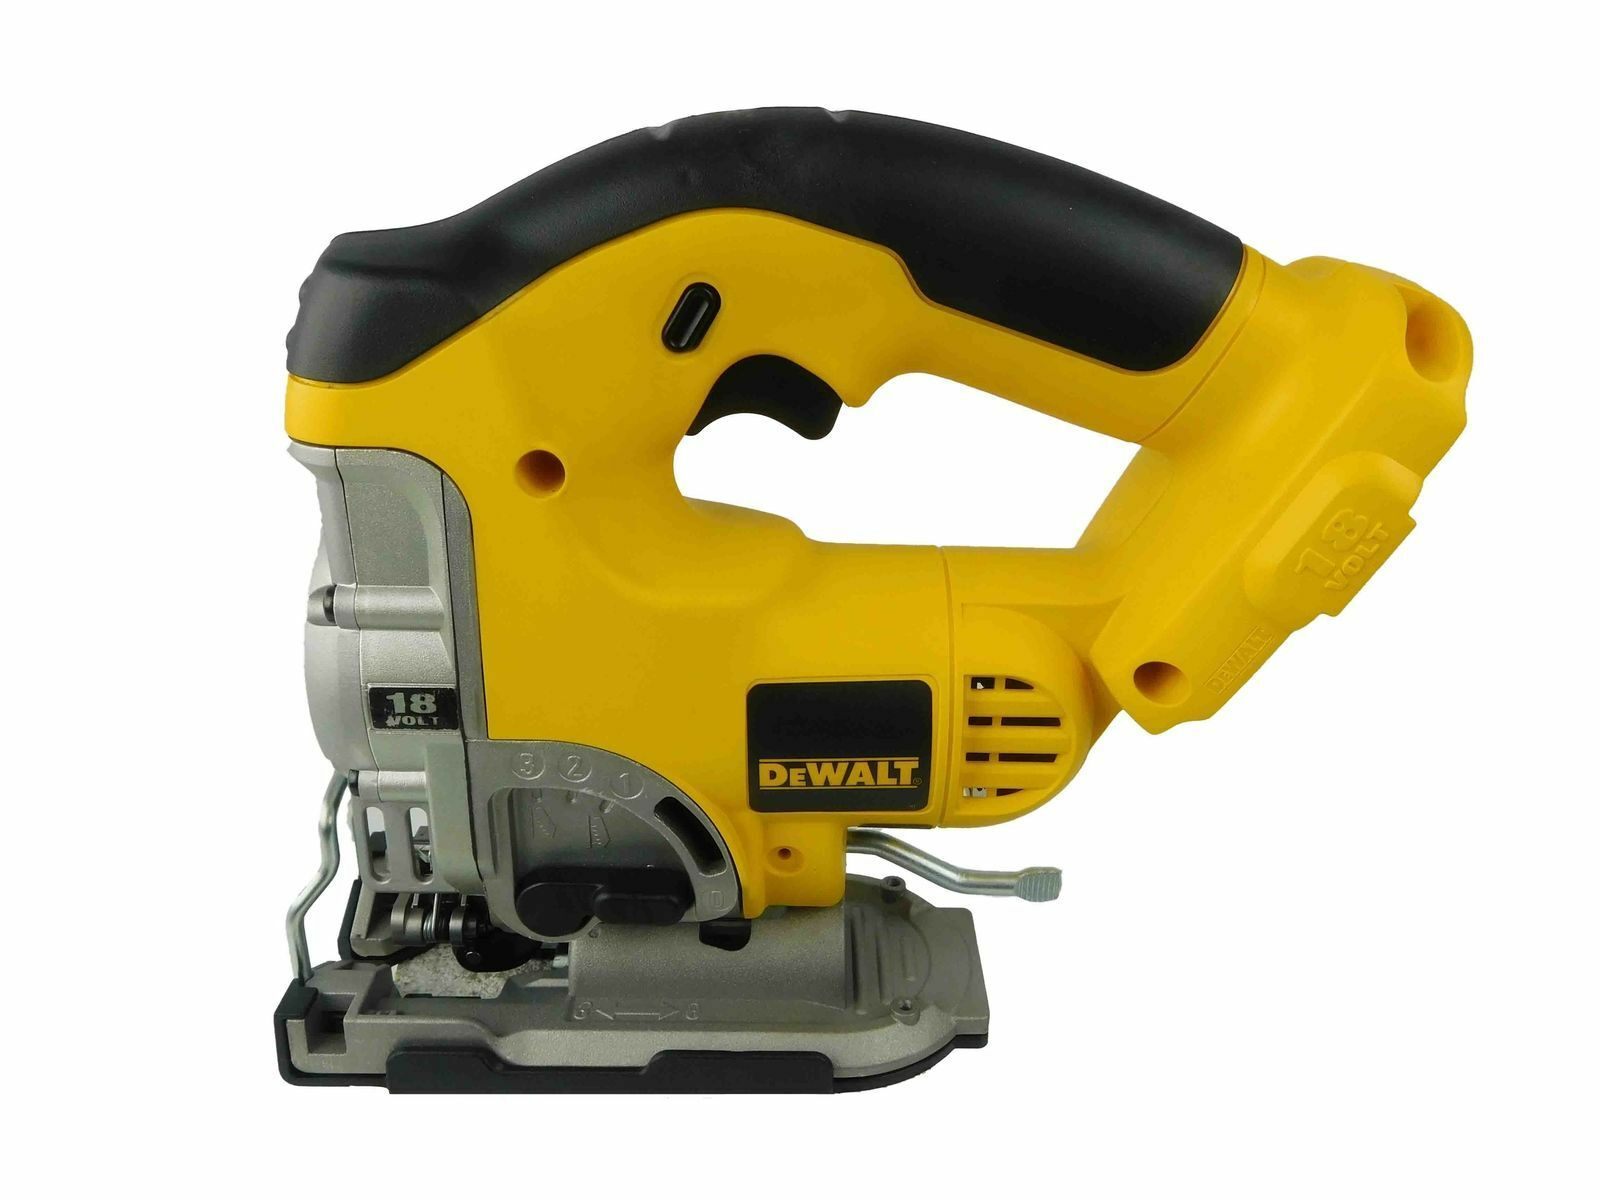 Dewalt dc330 cordless 18v jig saw bundle ebay keyboard keysfo Image collections